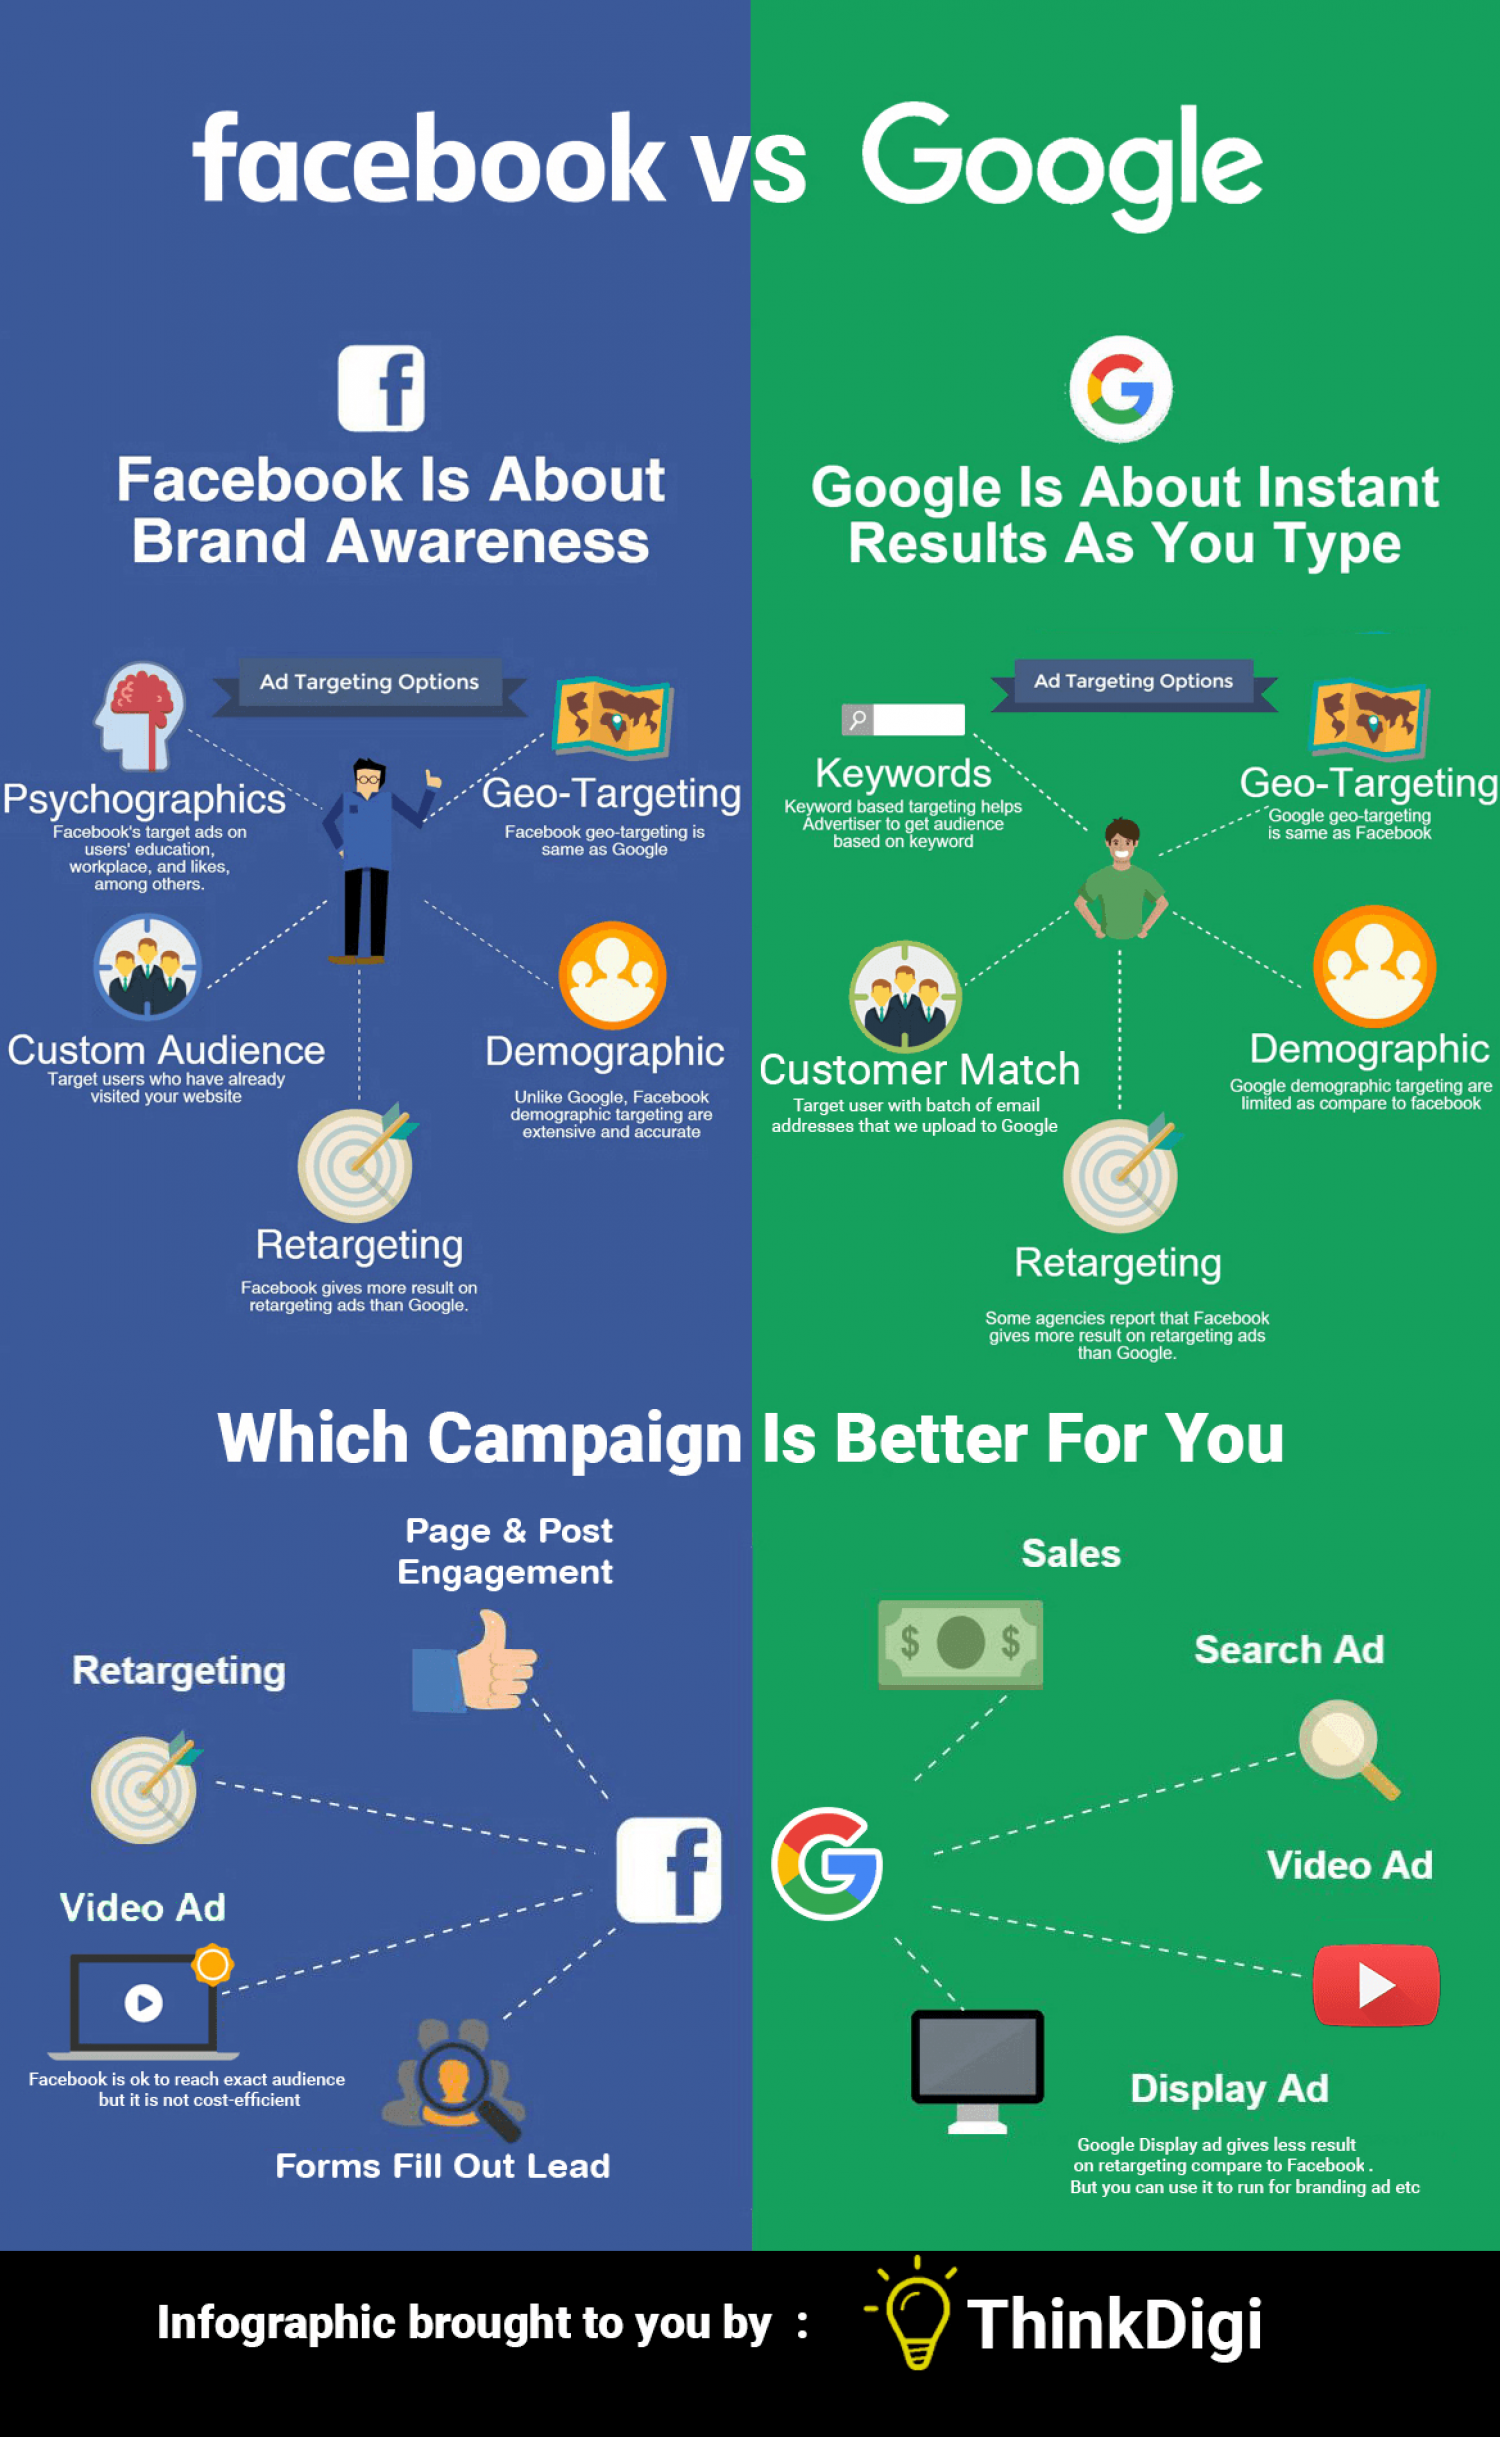 Facebook Ad vs Google Ad Infographic